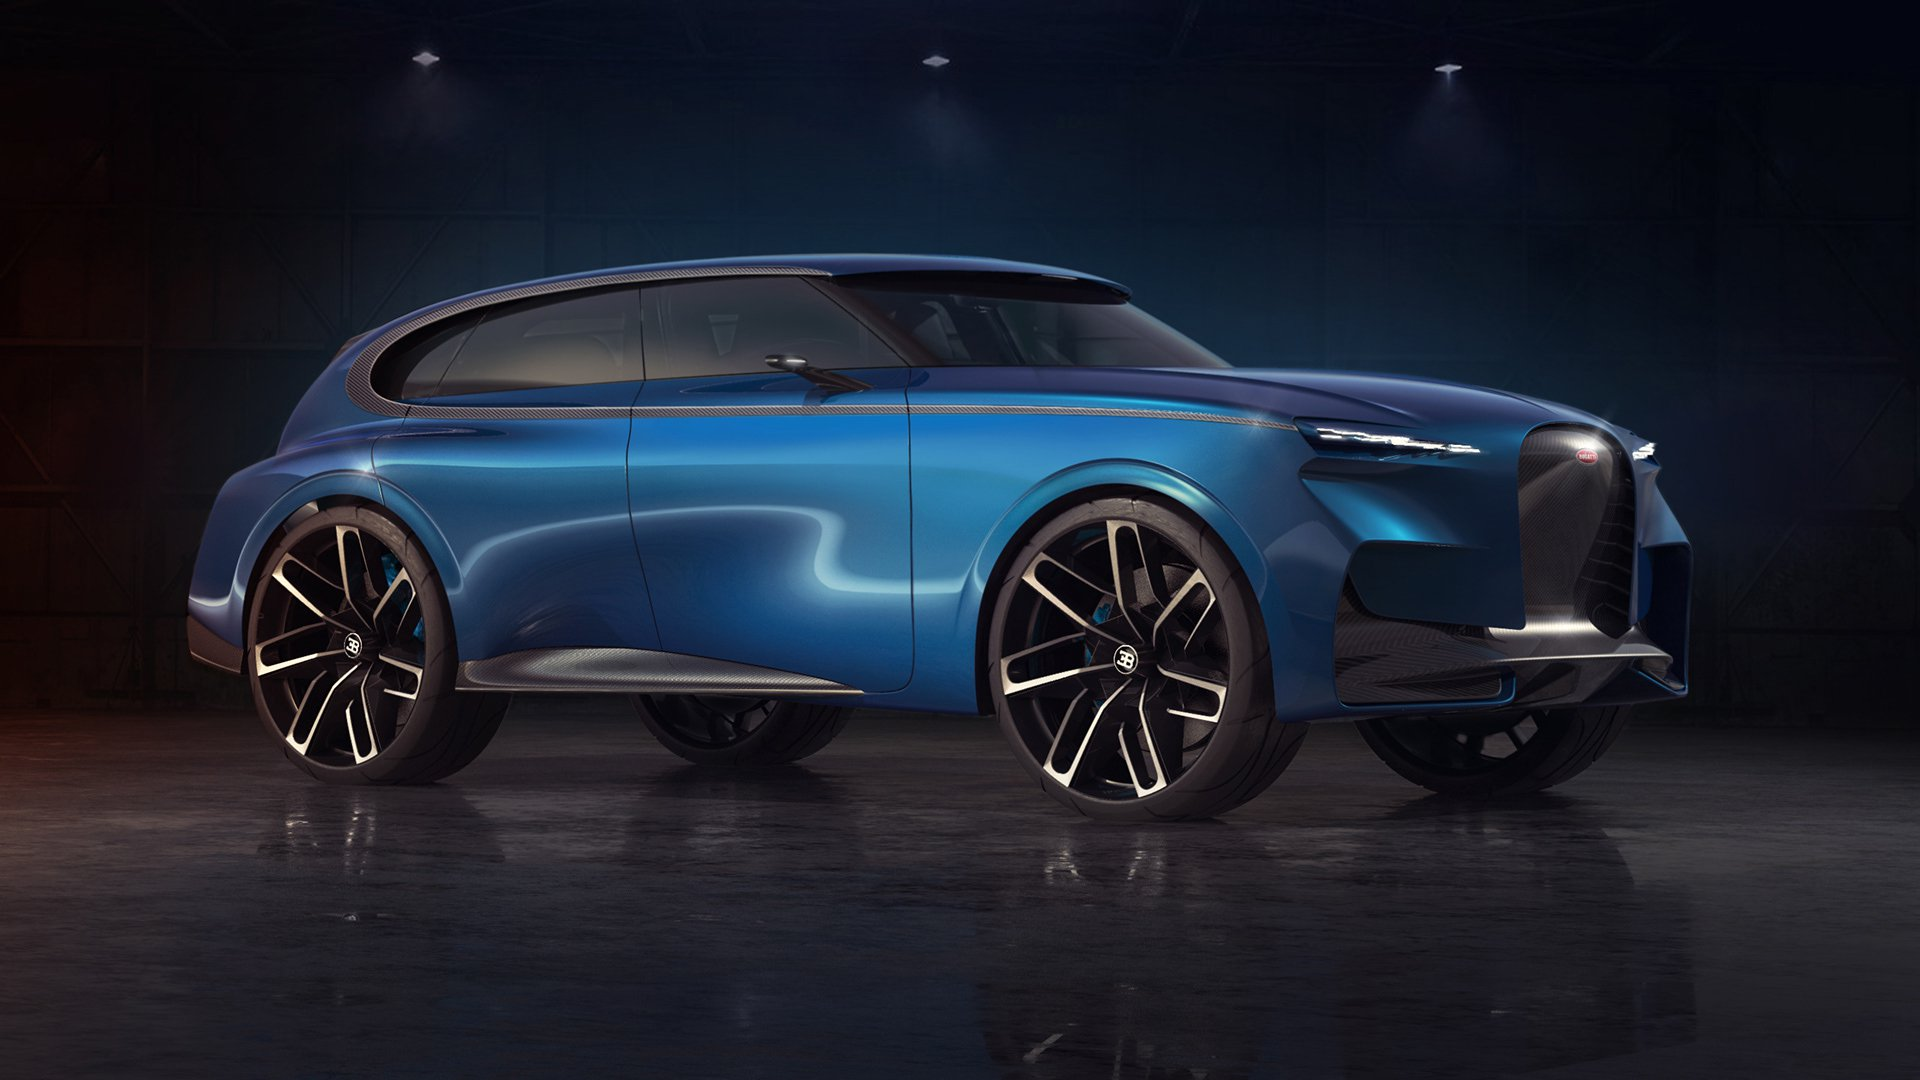 This Bugatti Suv Rendering Looks Cool But Should They